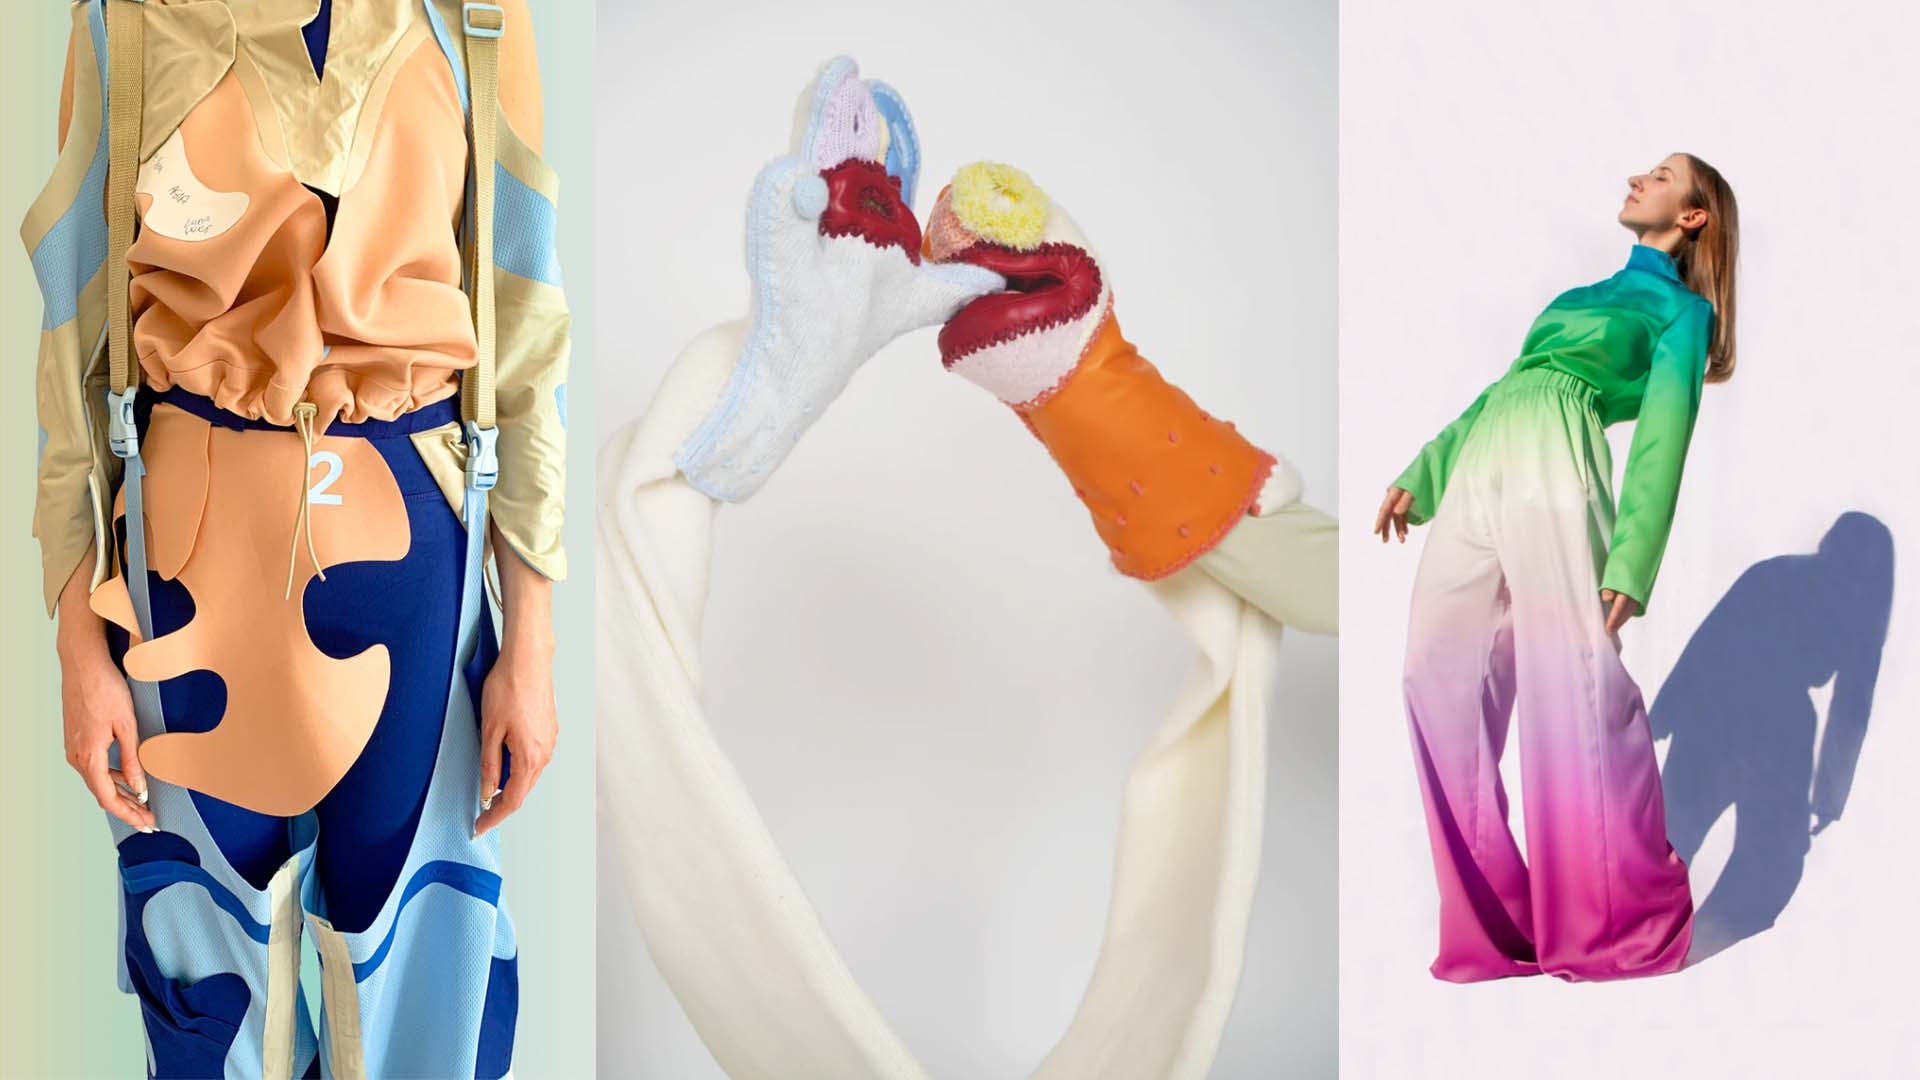 collage of student work. left = multicoloured patterned garment, middle = blue and orange glove puppets, right = multicoloured ombre jumpsuit garment